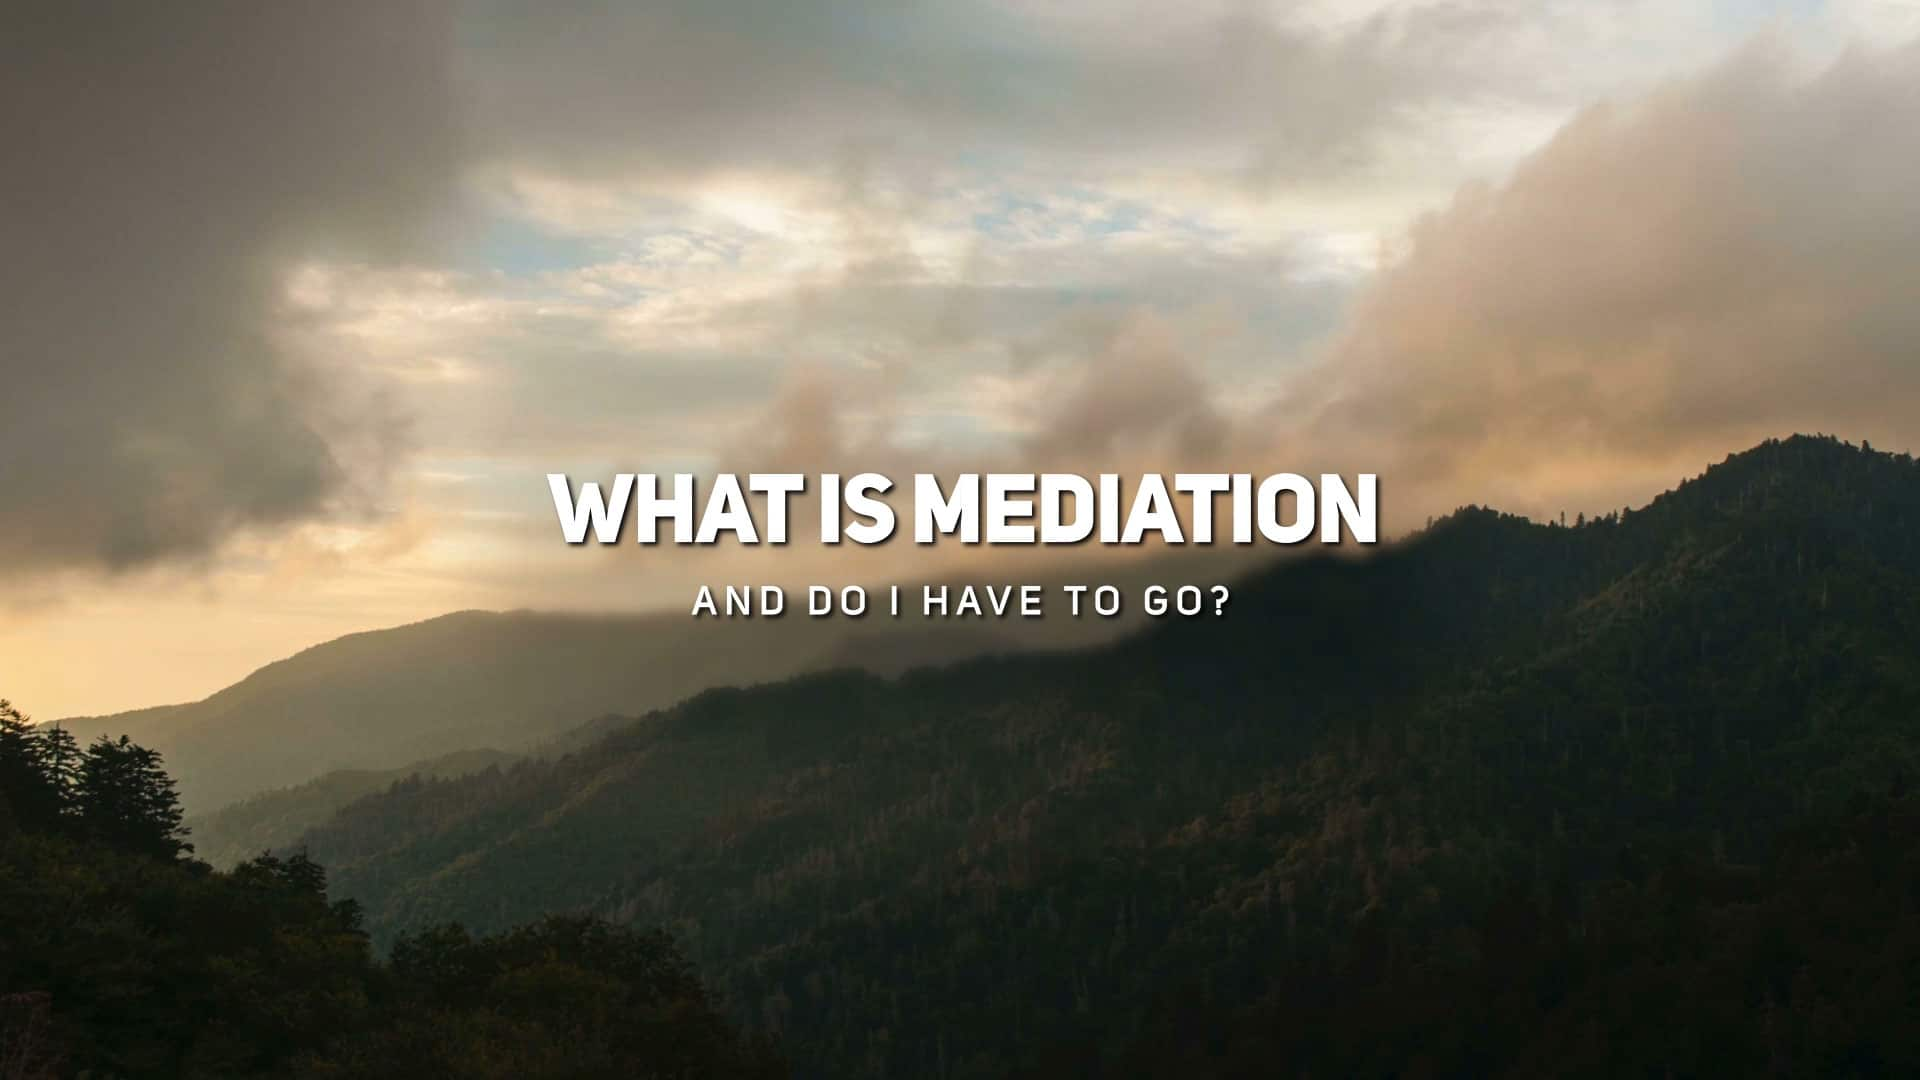 What is Mediation and Do I have to go